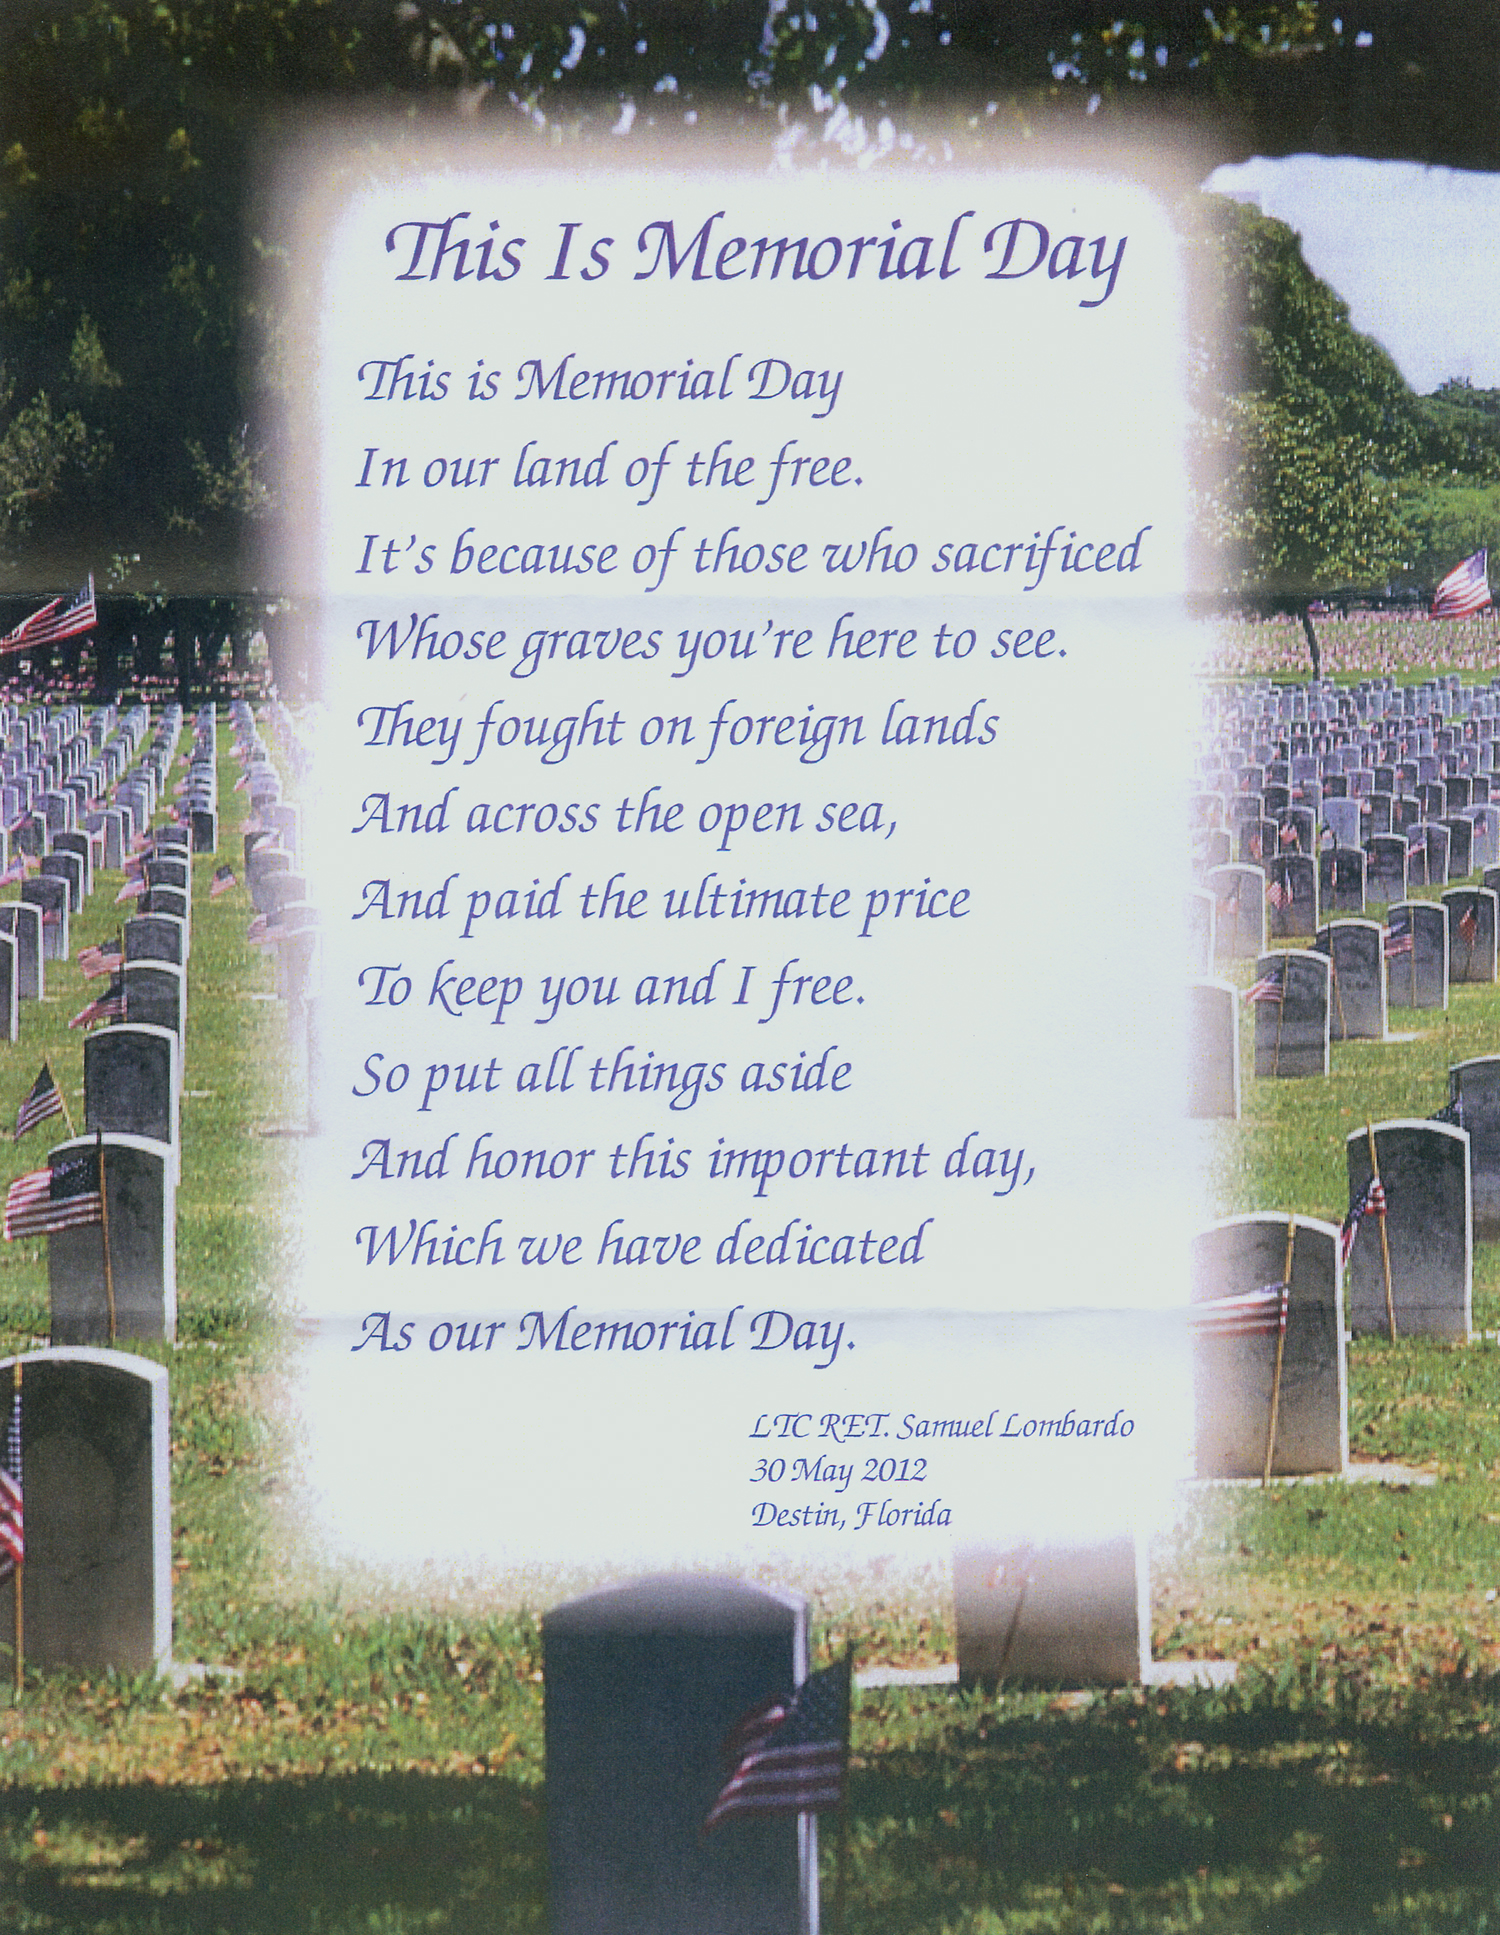 This Is Memorial Day Poem Prayer